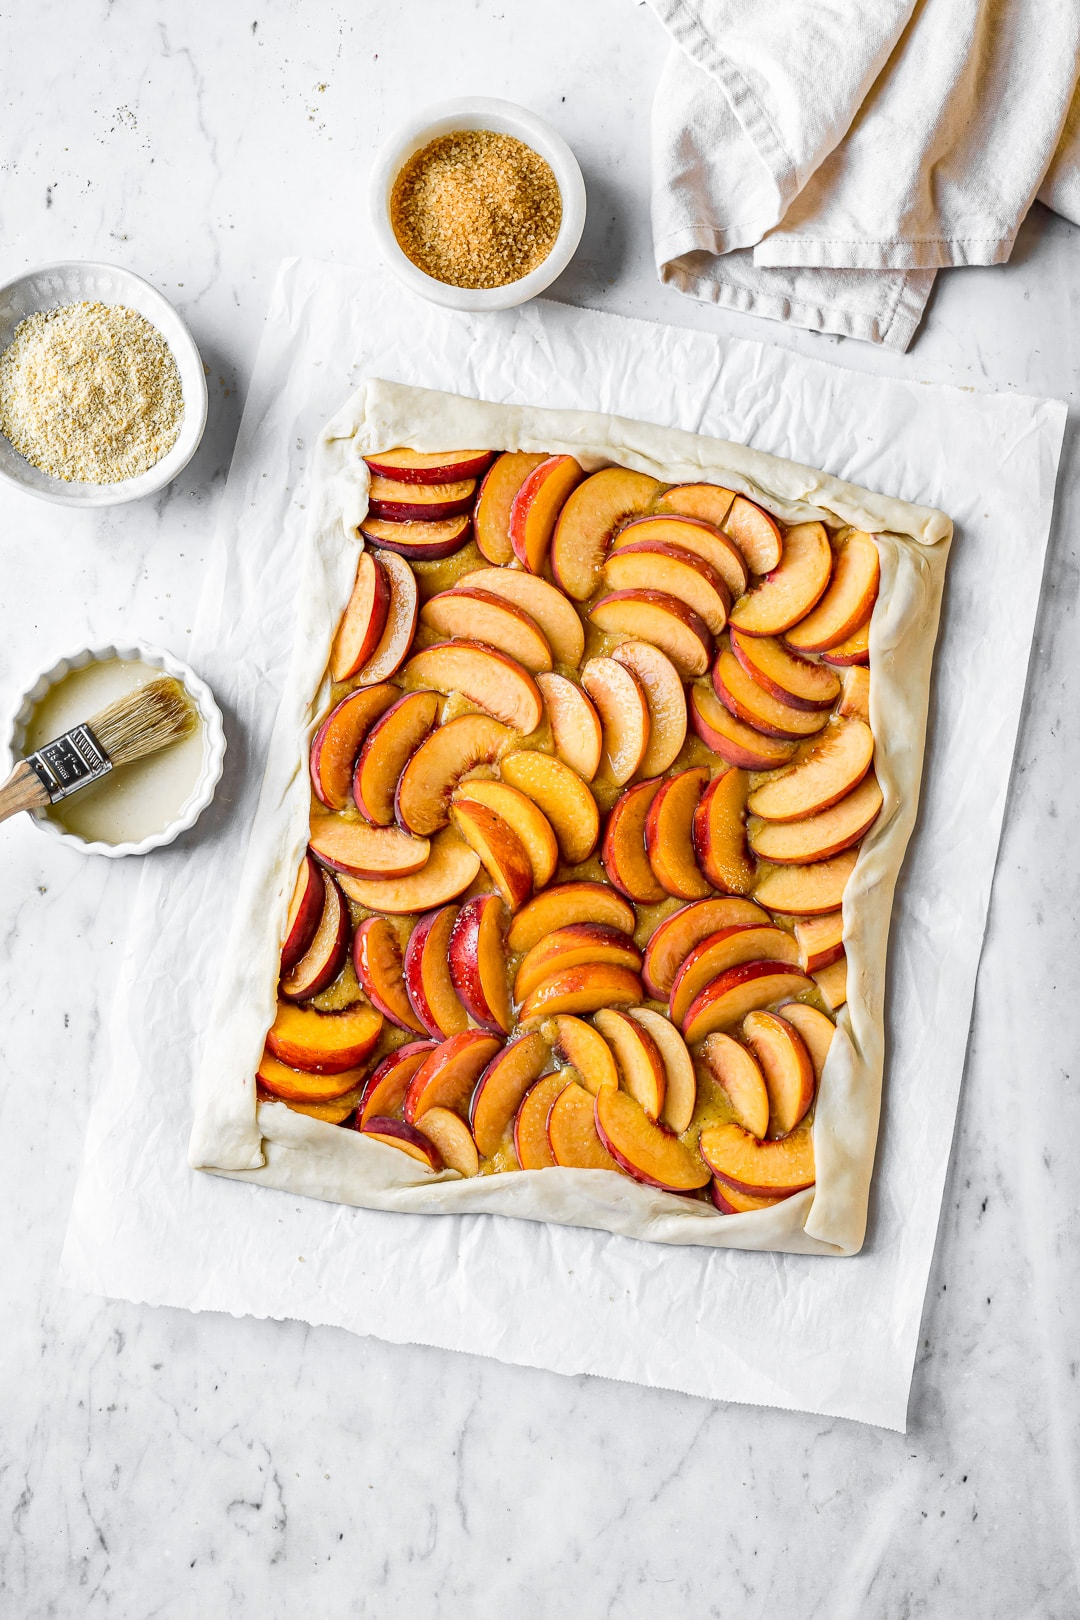 Unbaked peach galette on a white marble background